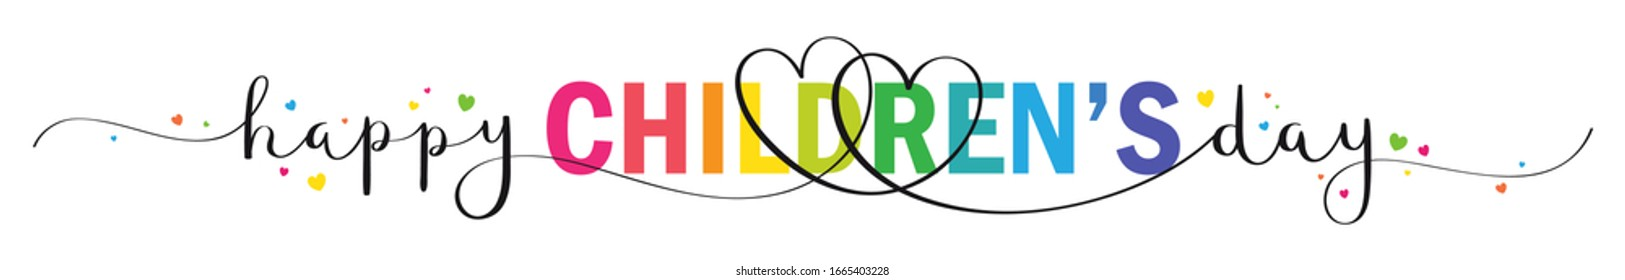 HAPPY CHILDREN'S DAY vector mixed typography banner with brush calligraphy and colorful hearts